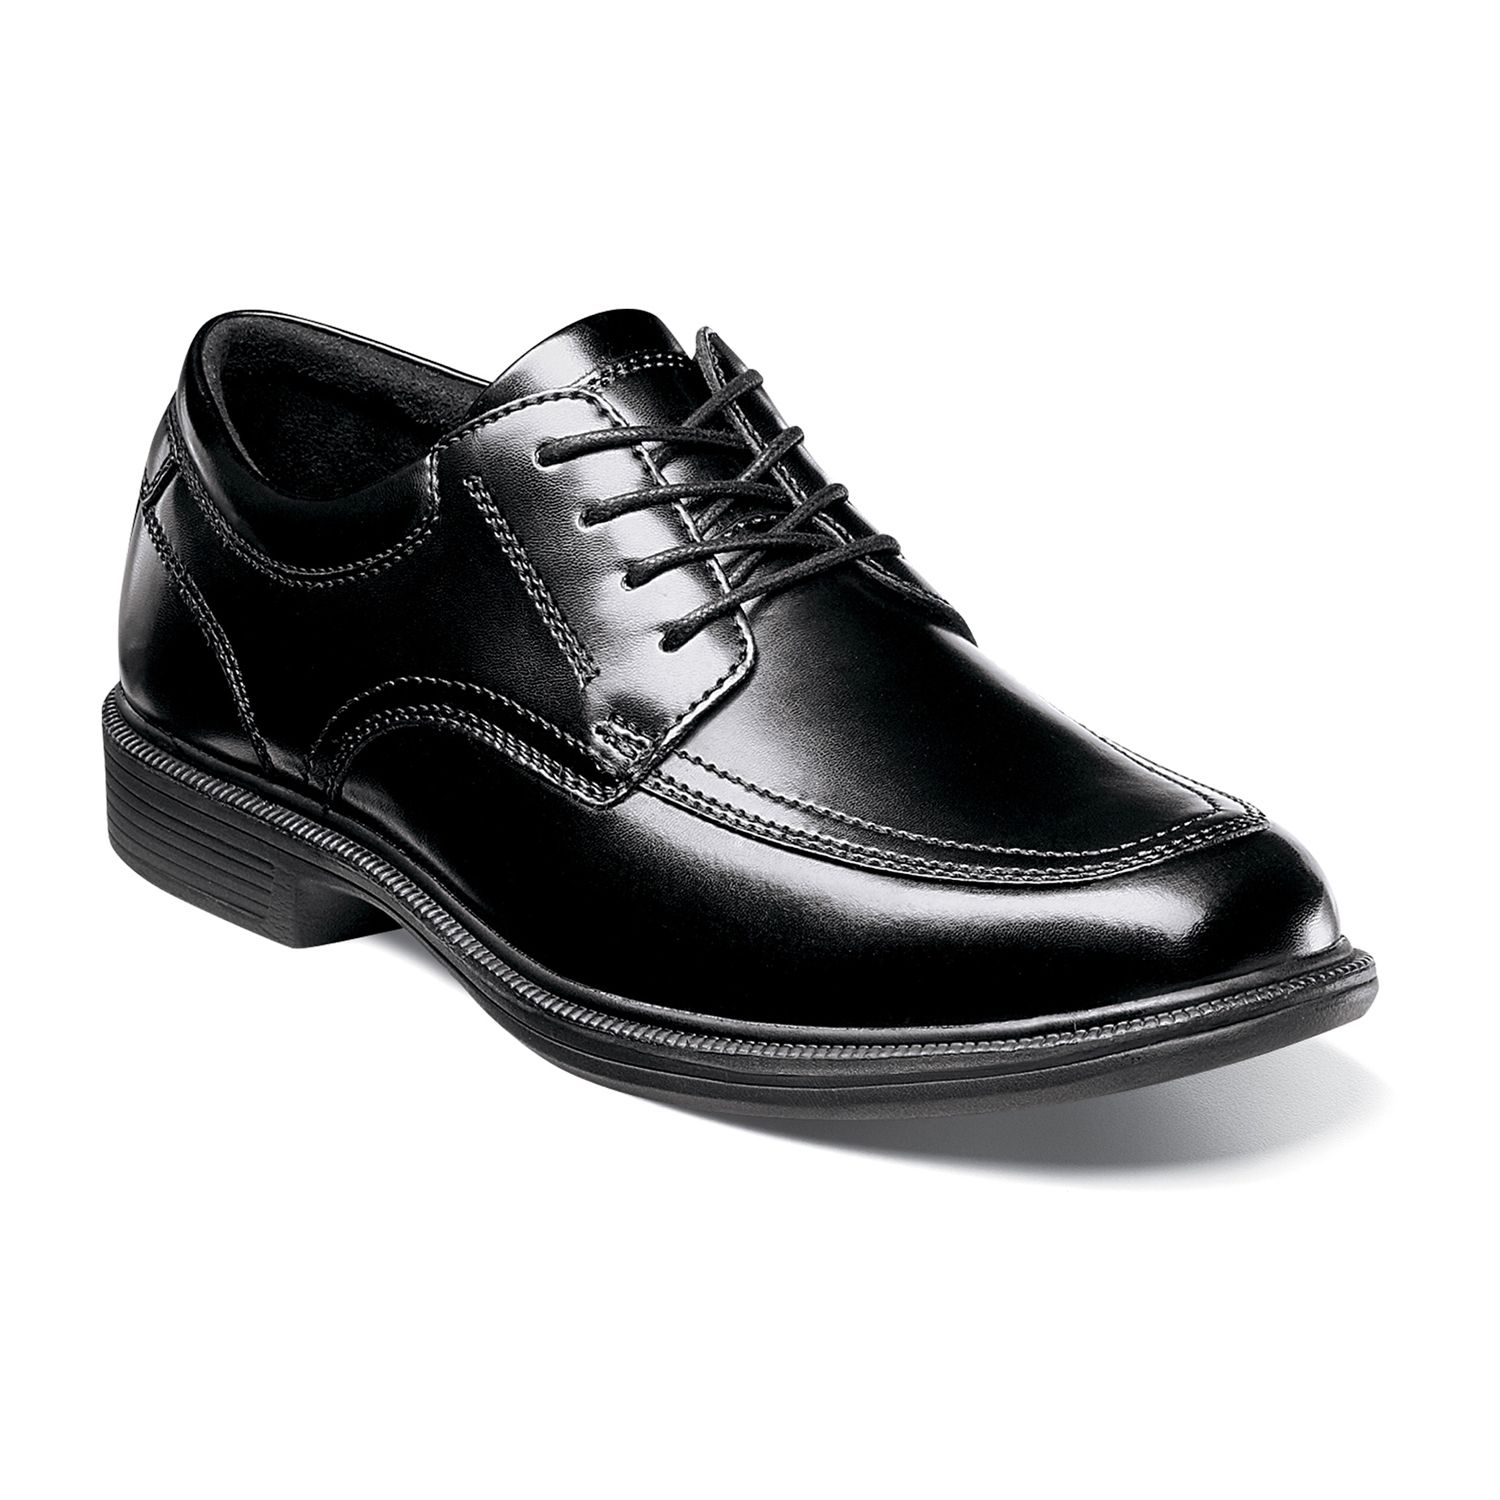 Black and gray mens dress shoes